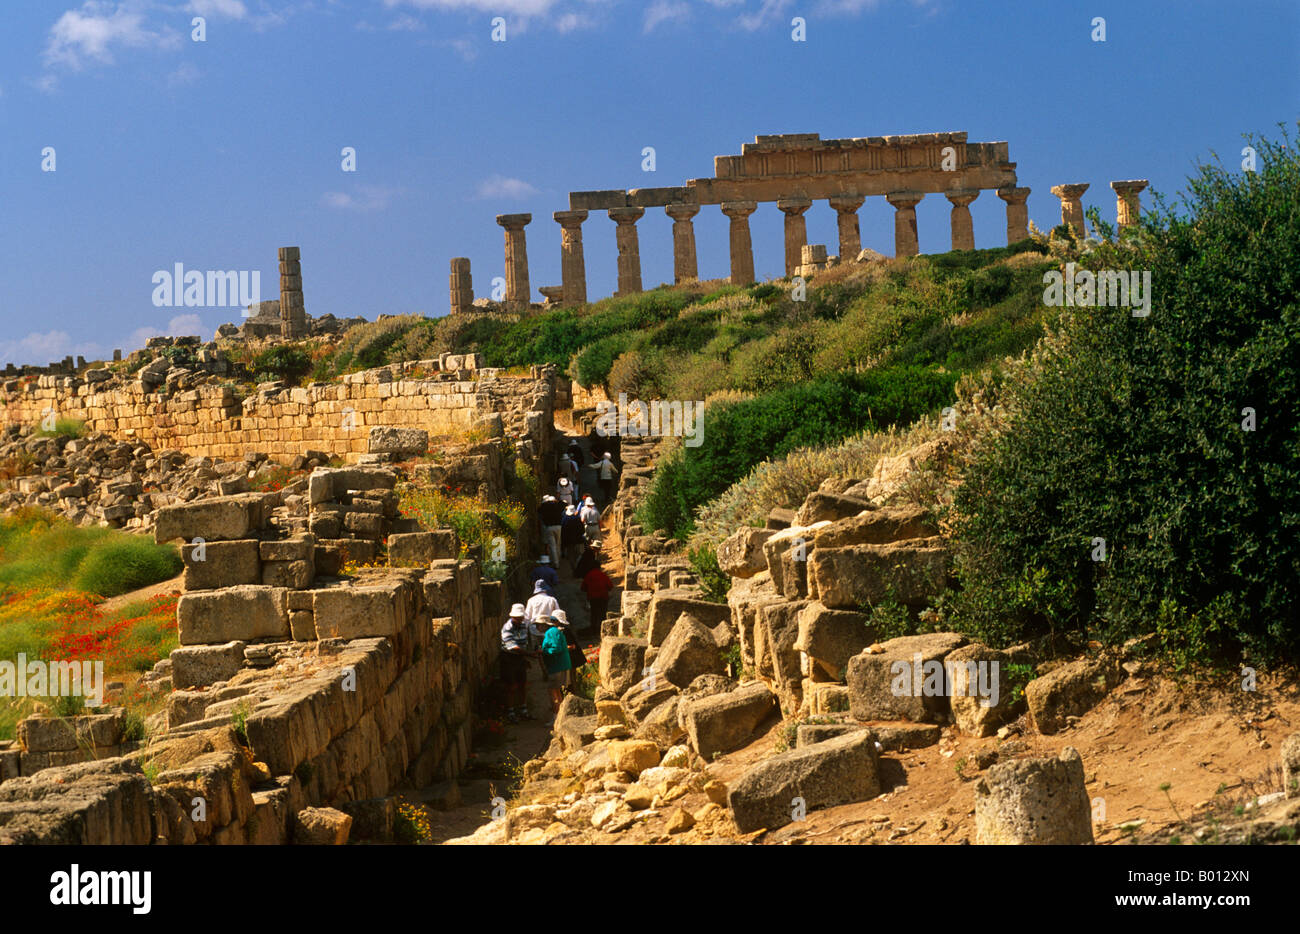 Italy, Sicily, Trapani. Selinunte is an abandoned ancient Greek city, with ruins of an acropolis and numerous temples. - Stock Image